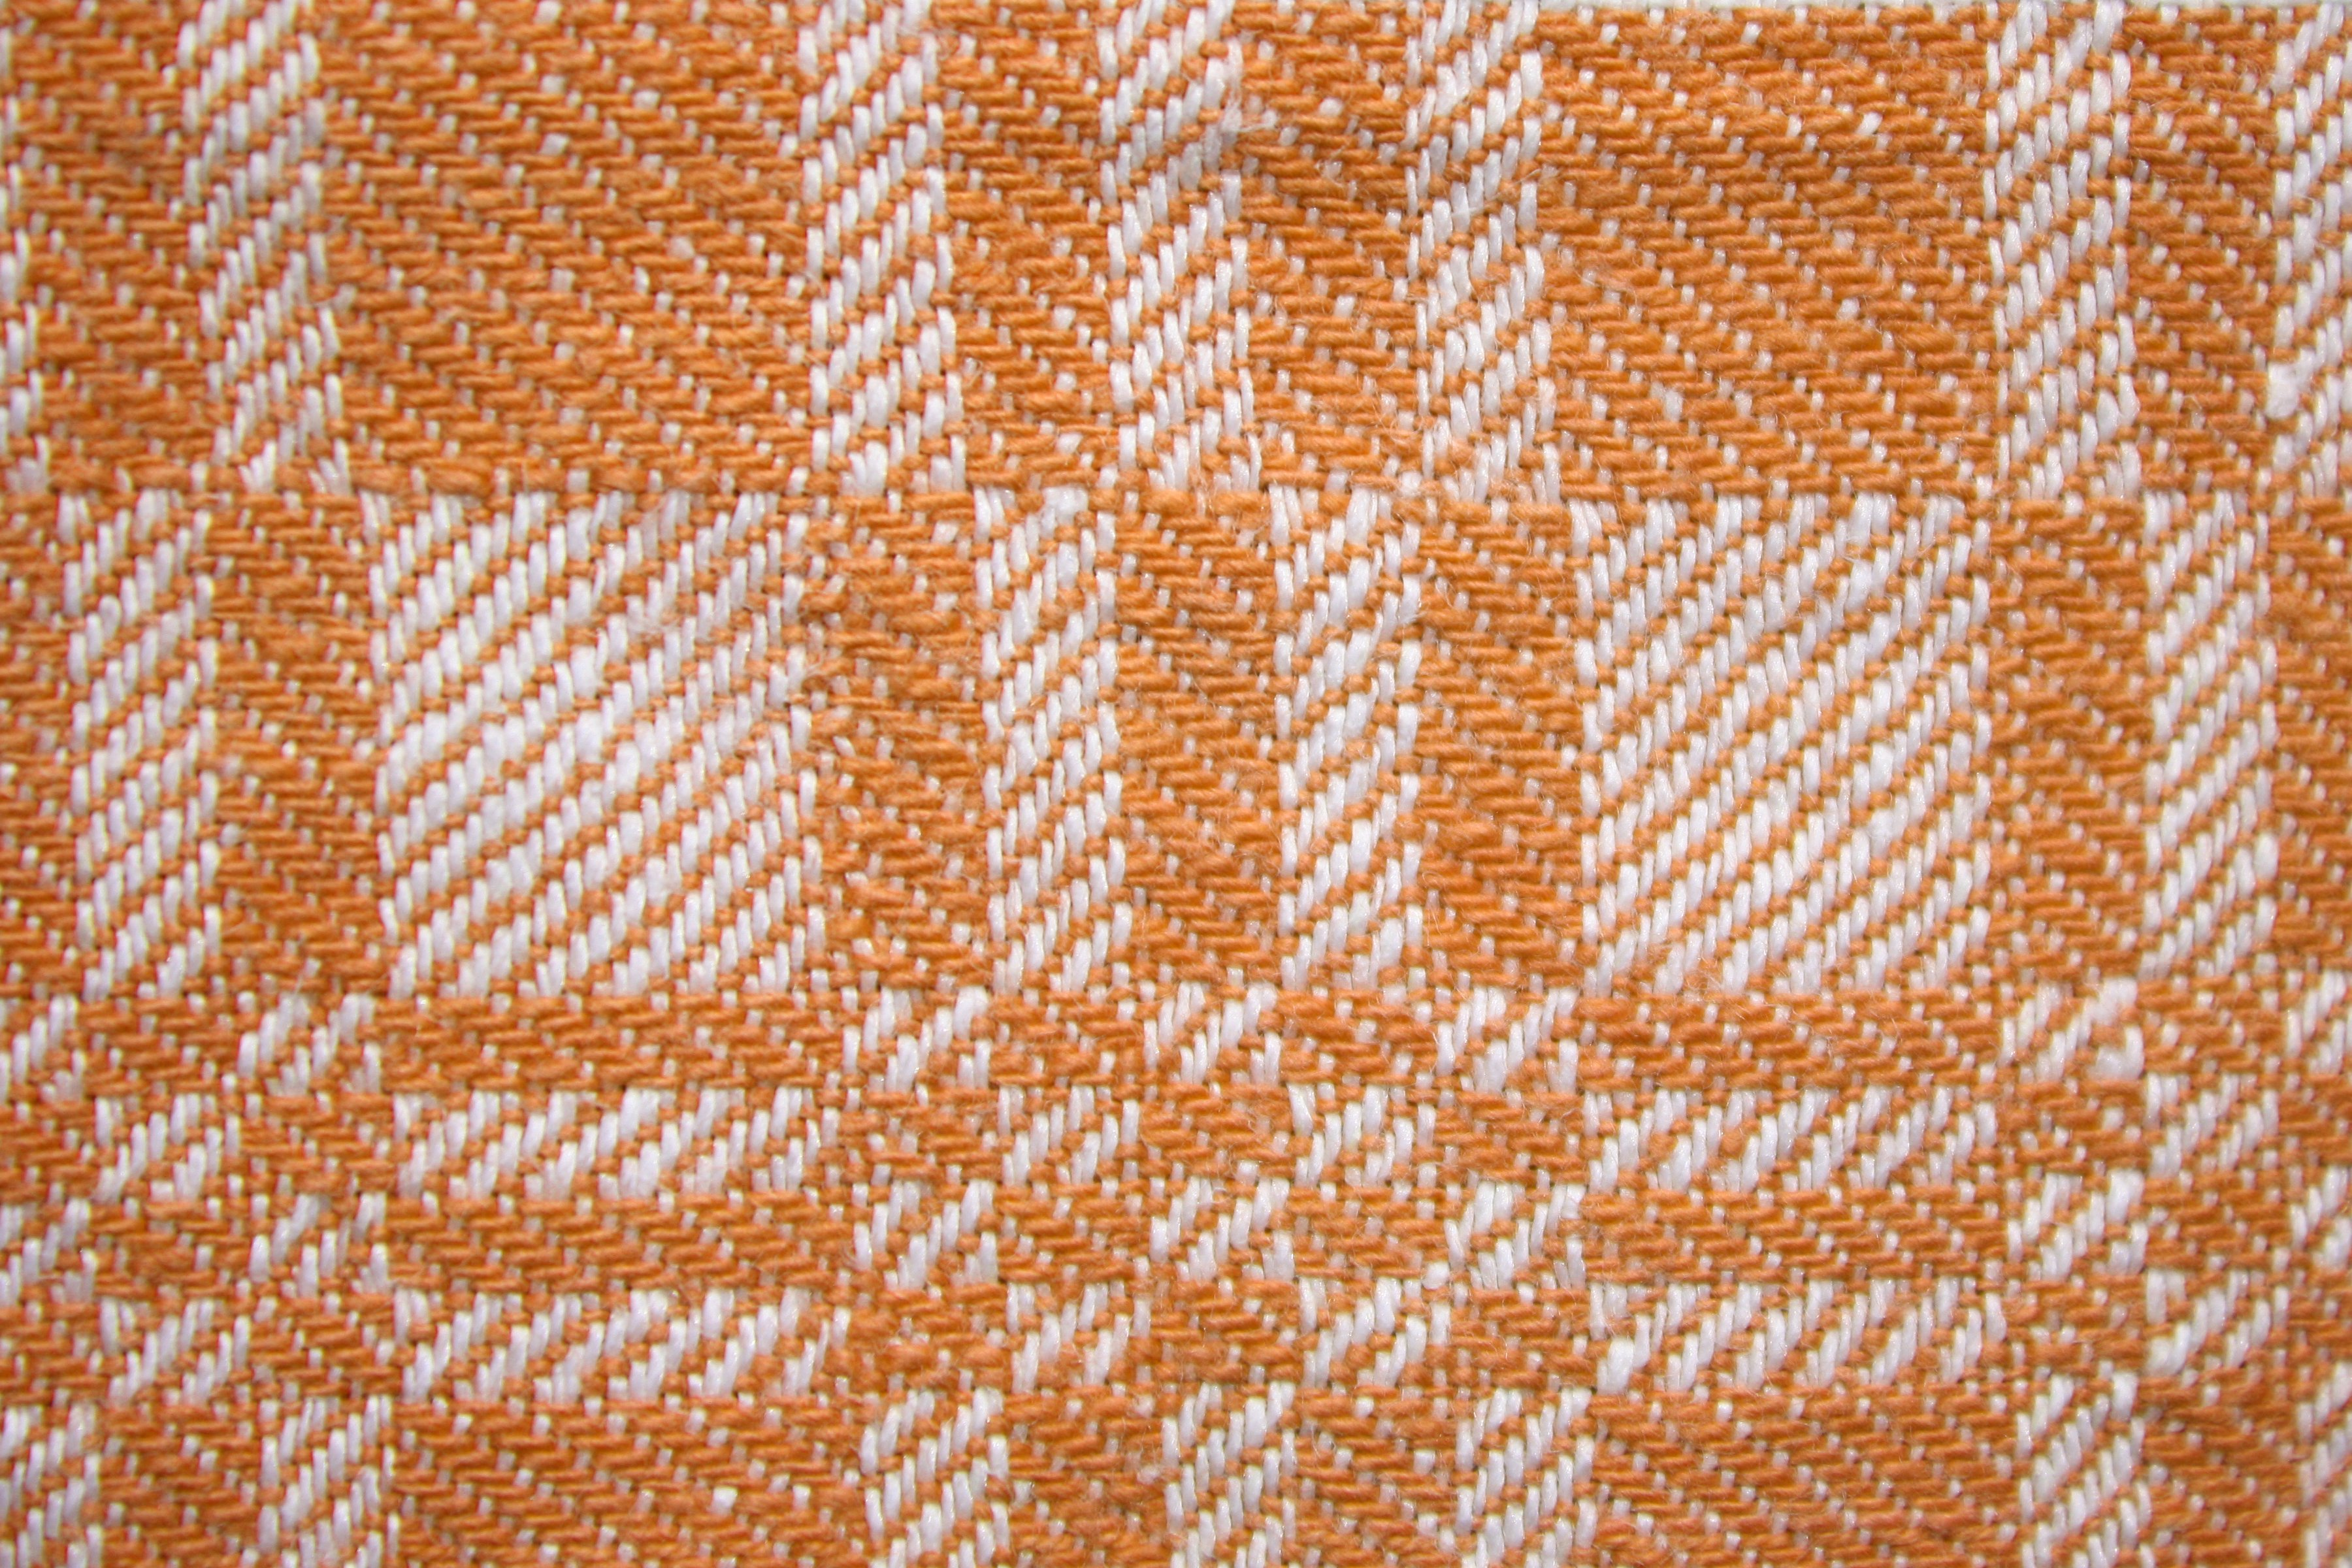 Orange And White Woven Fabric Texture With Squares Pattern